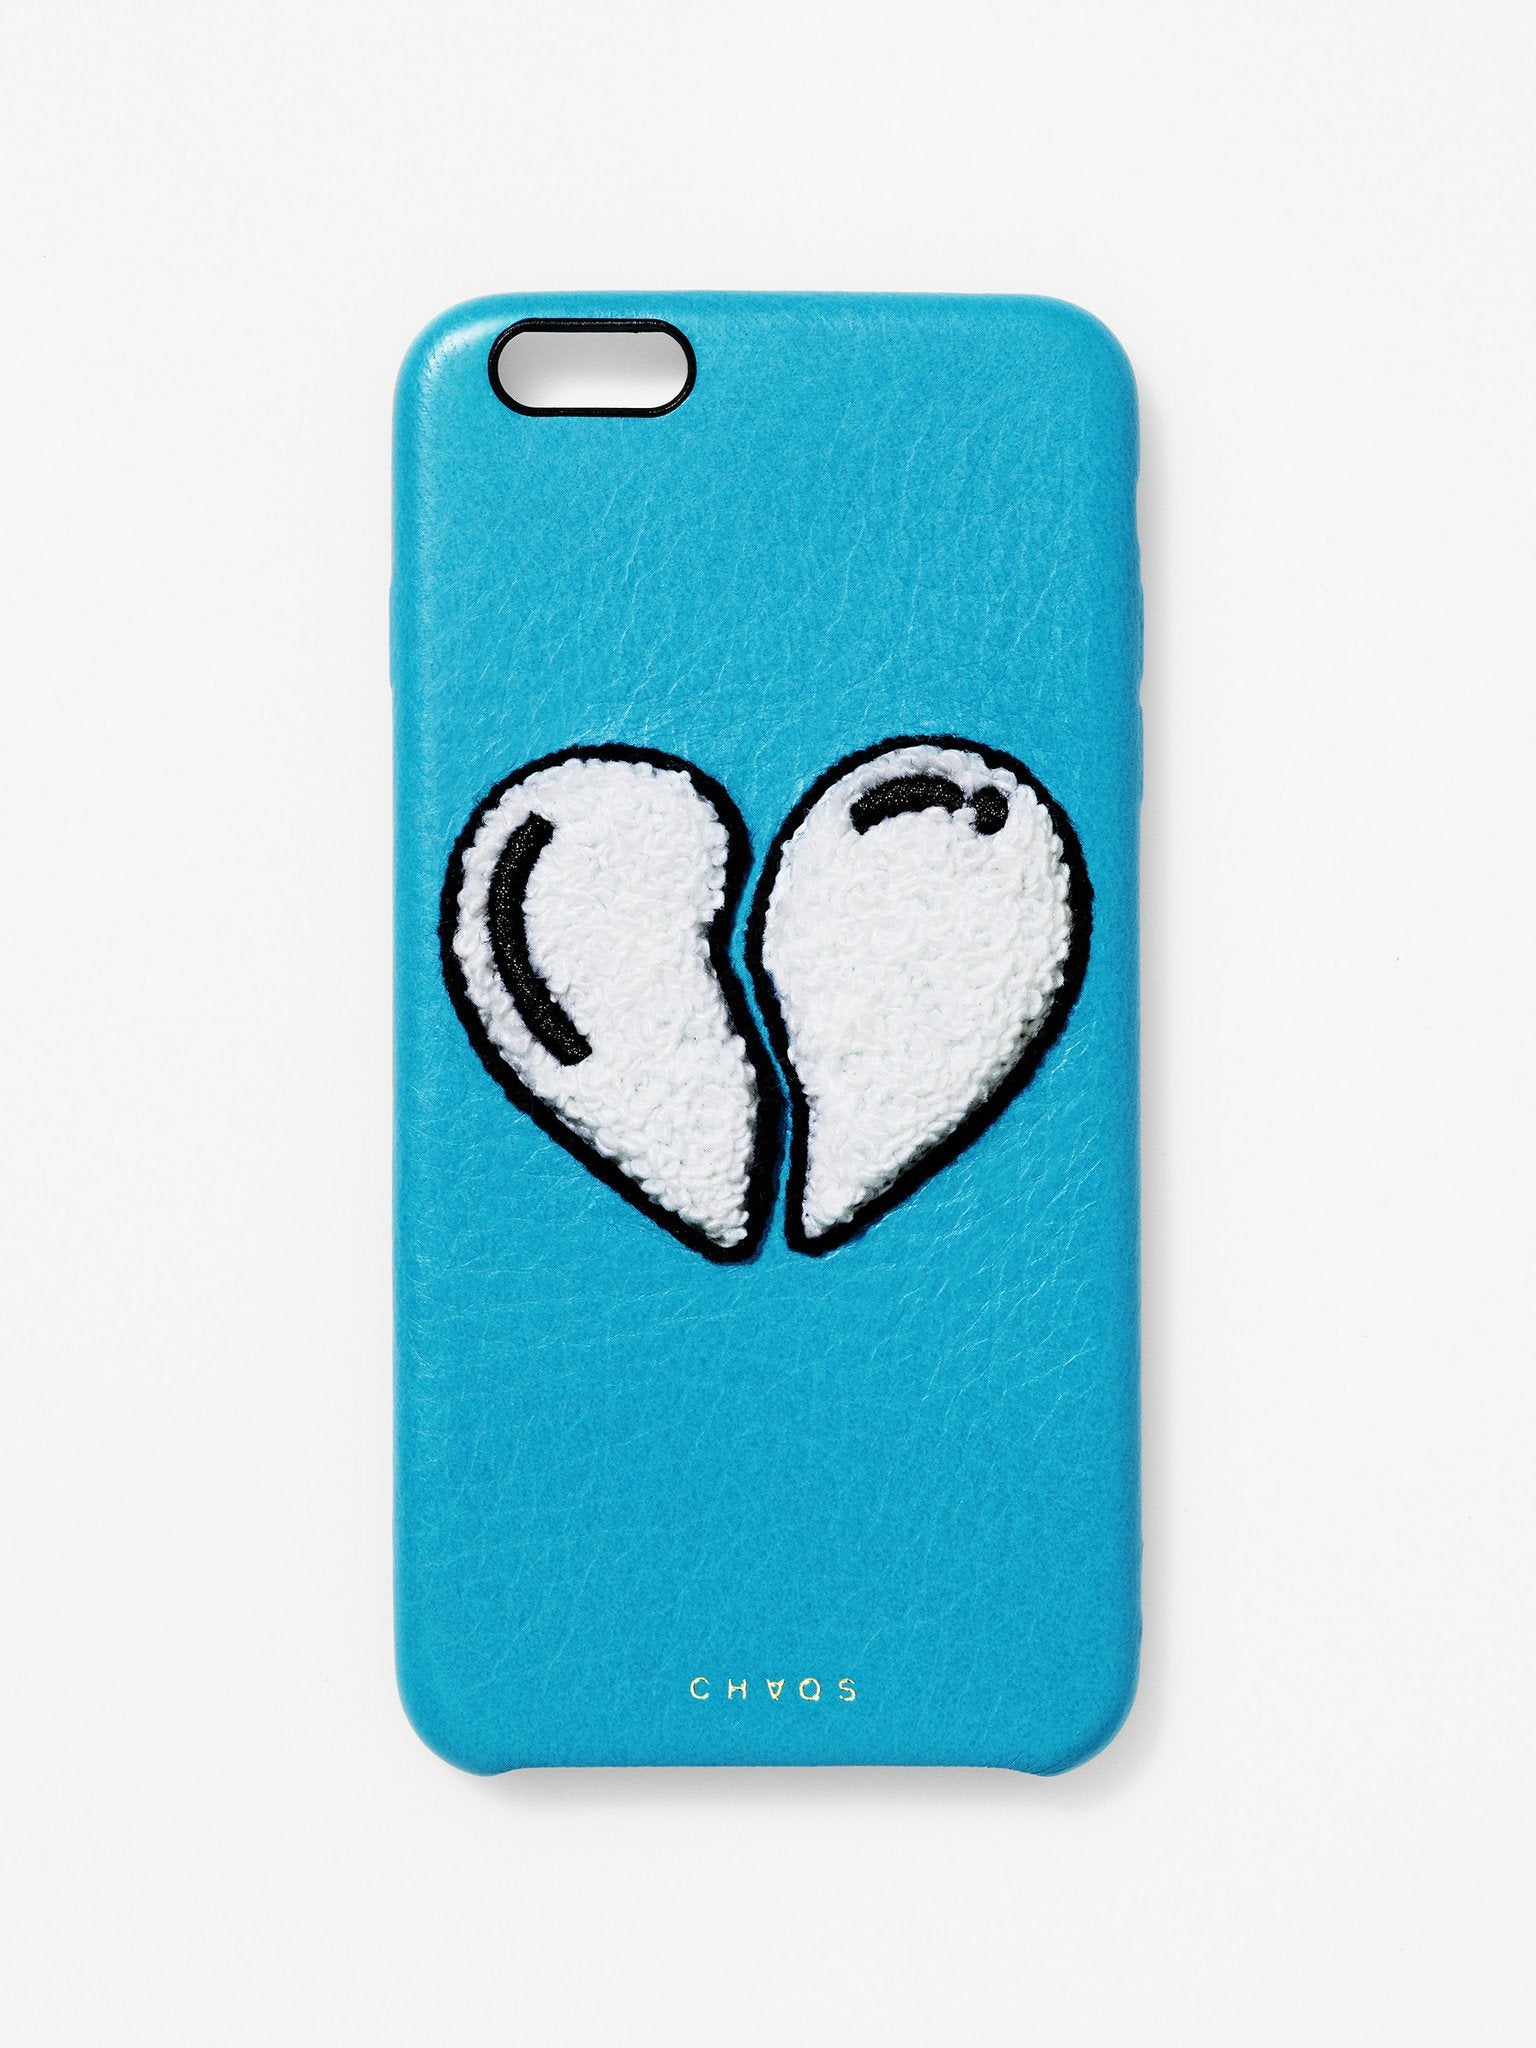 Embroidered Broken Heart Leather iPhone Case Blue